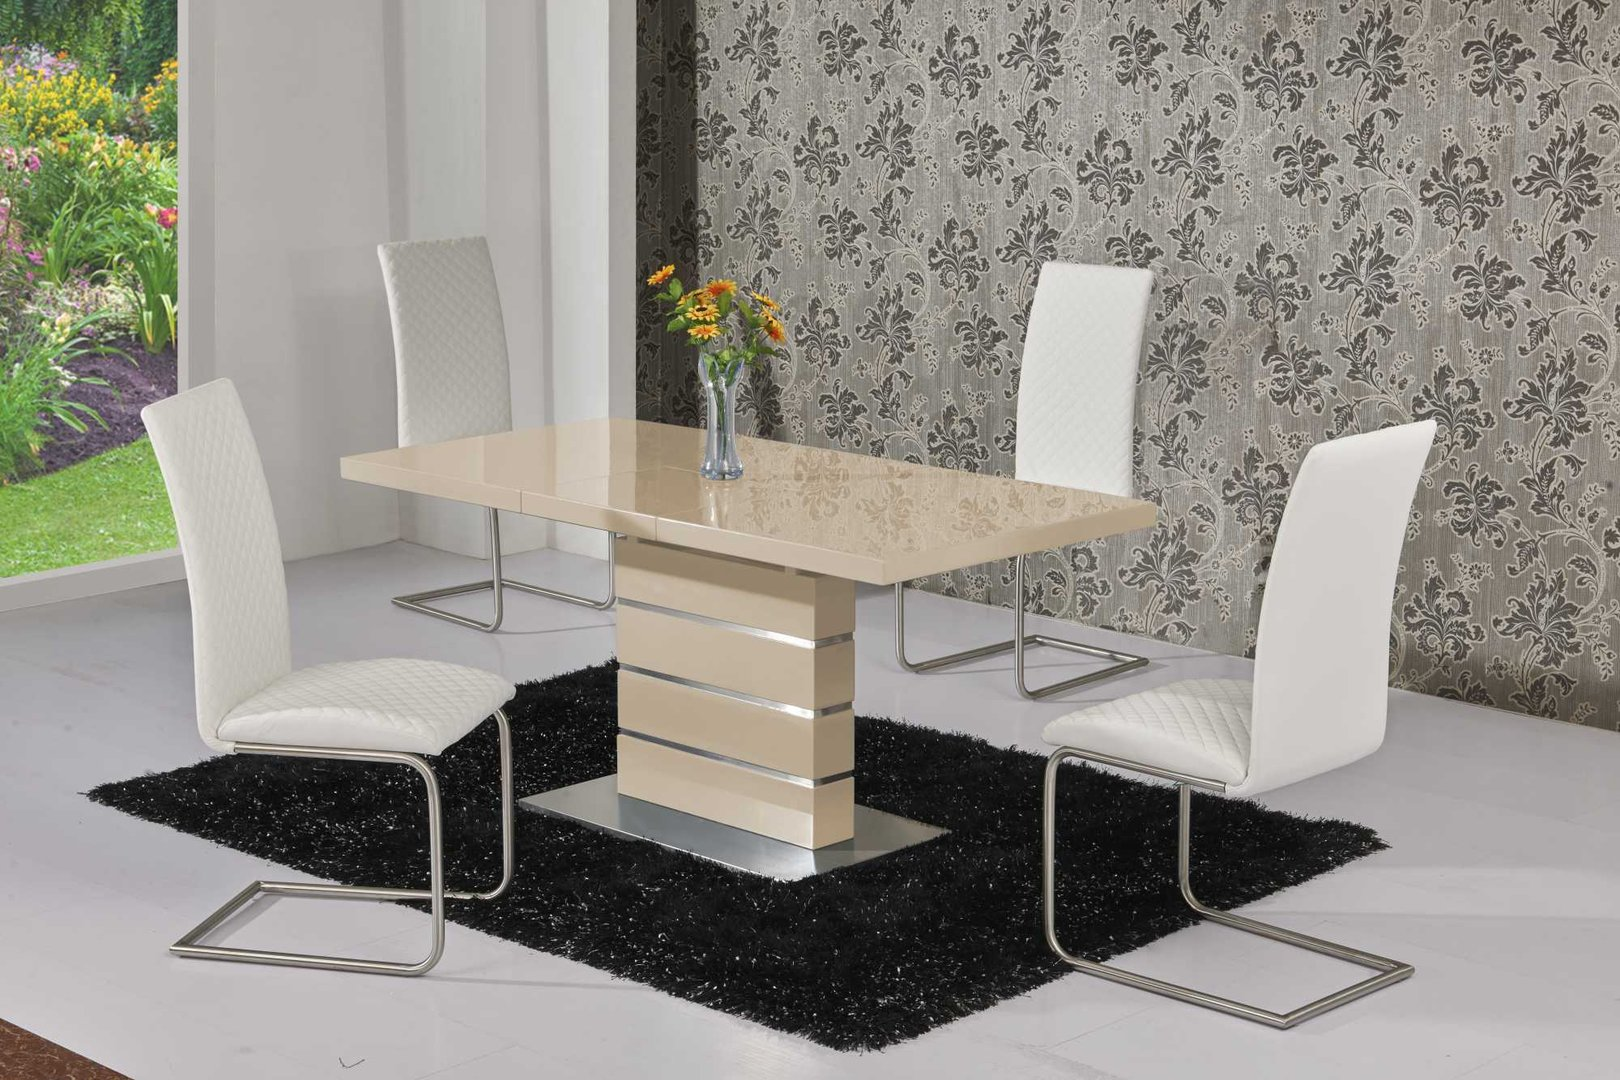 Extending Cream High Gloss Dining Table and 6 White Chairs